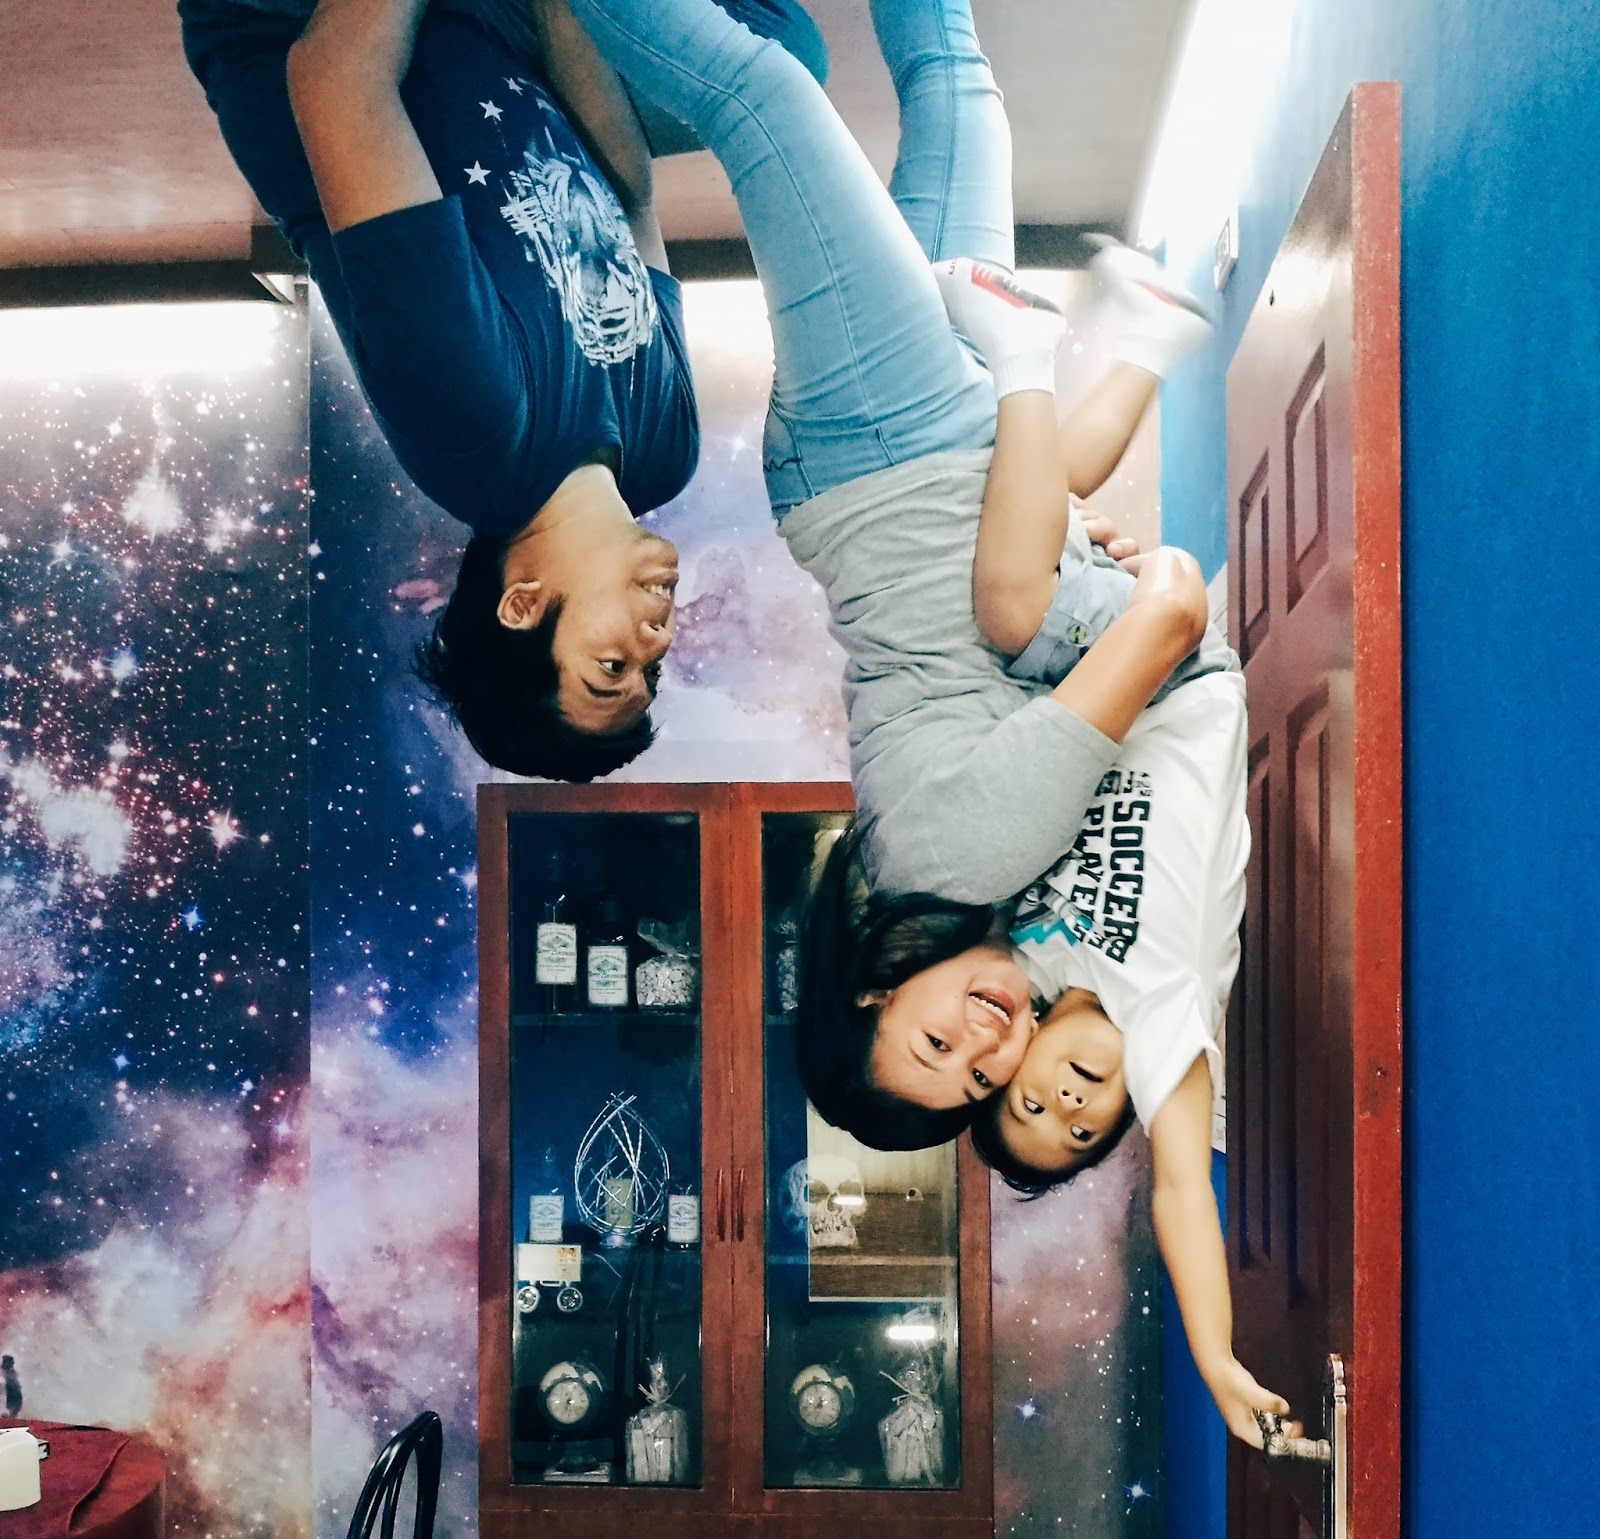 Turning Our World Upside Down at Upside Down World Cebu